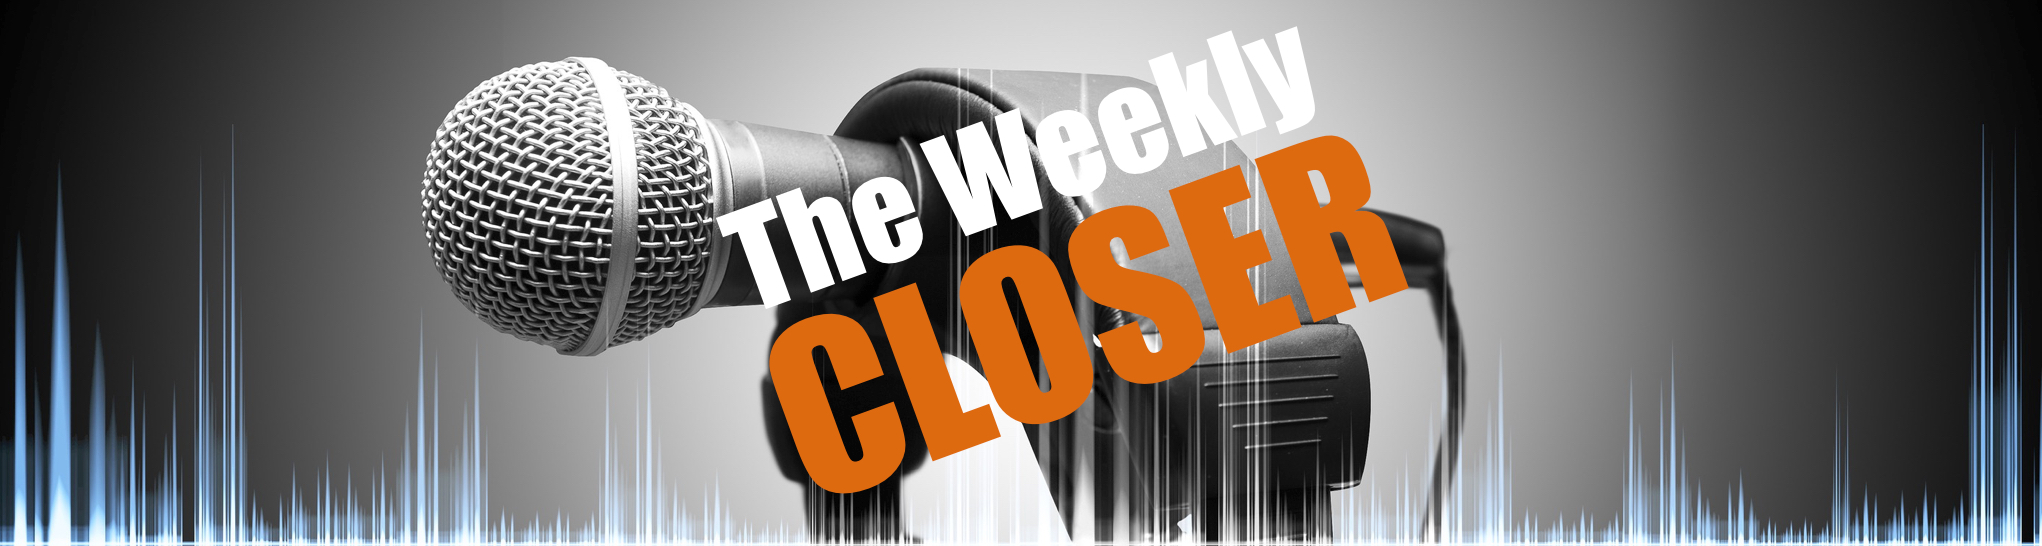 The Weekly Closer